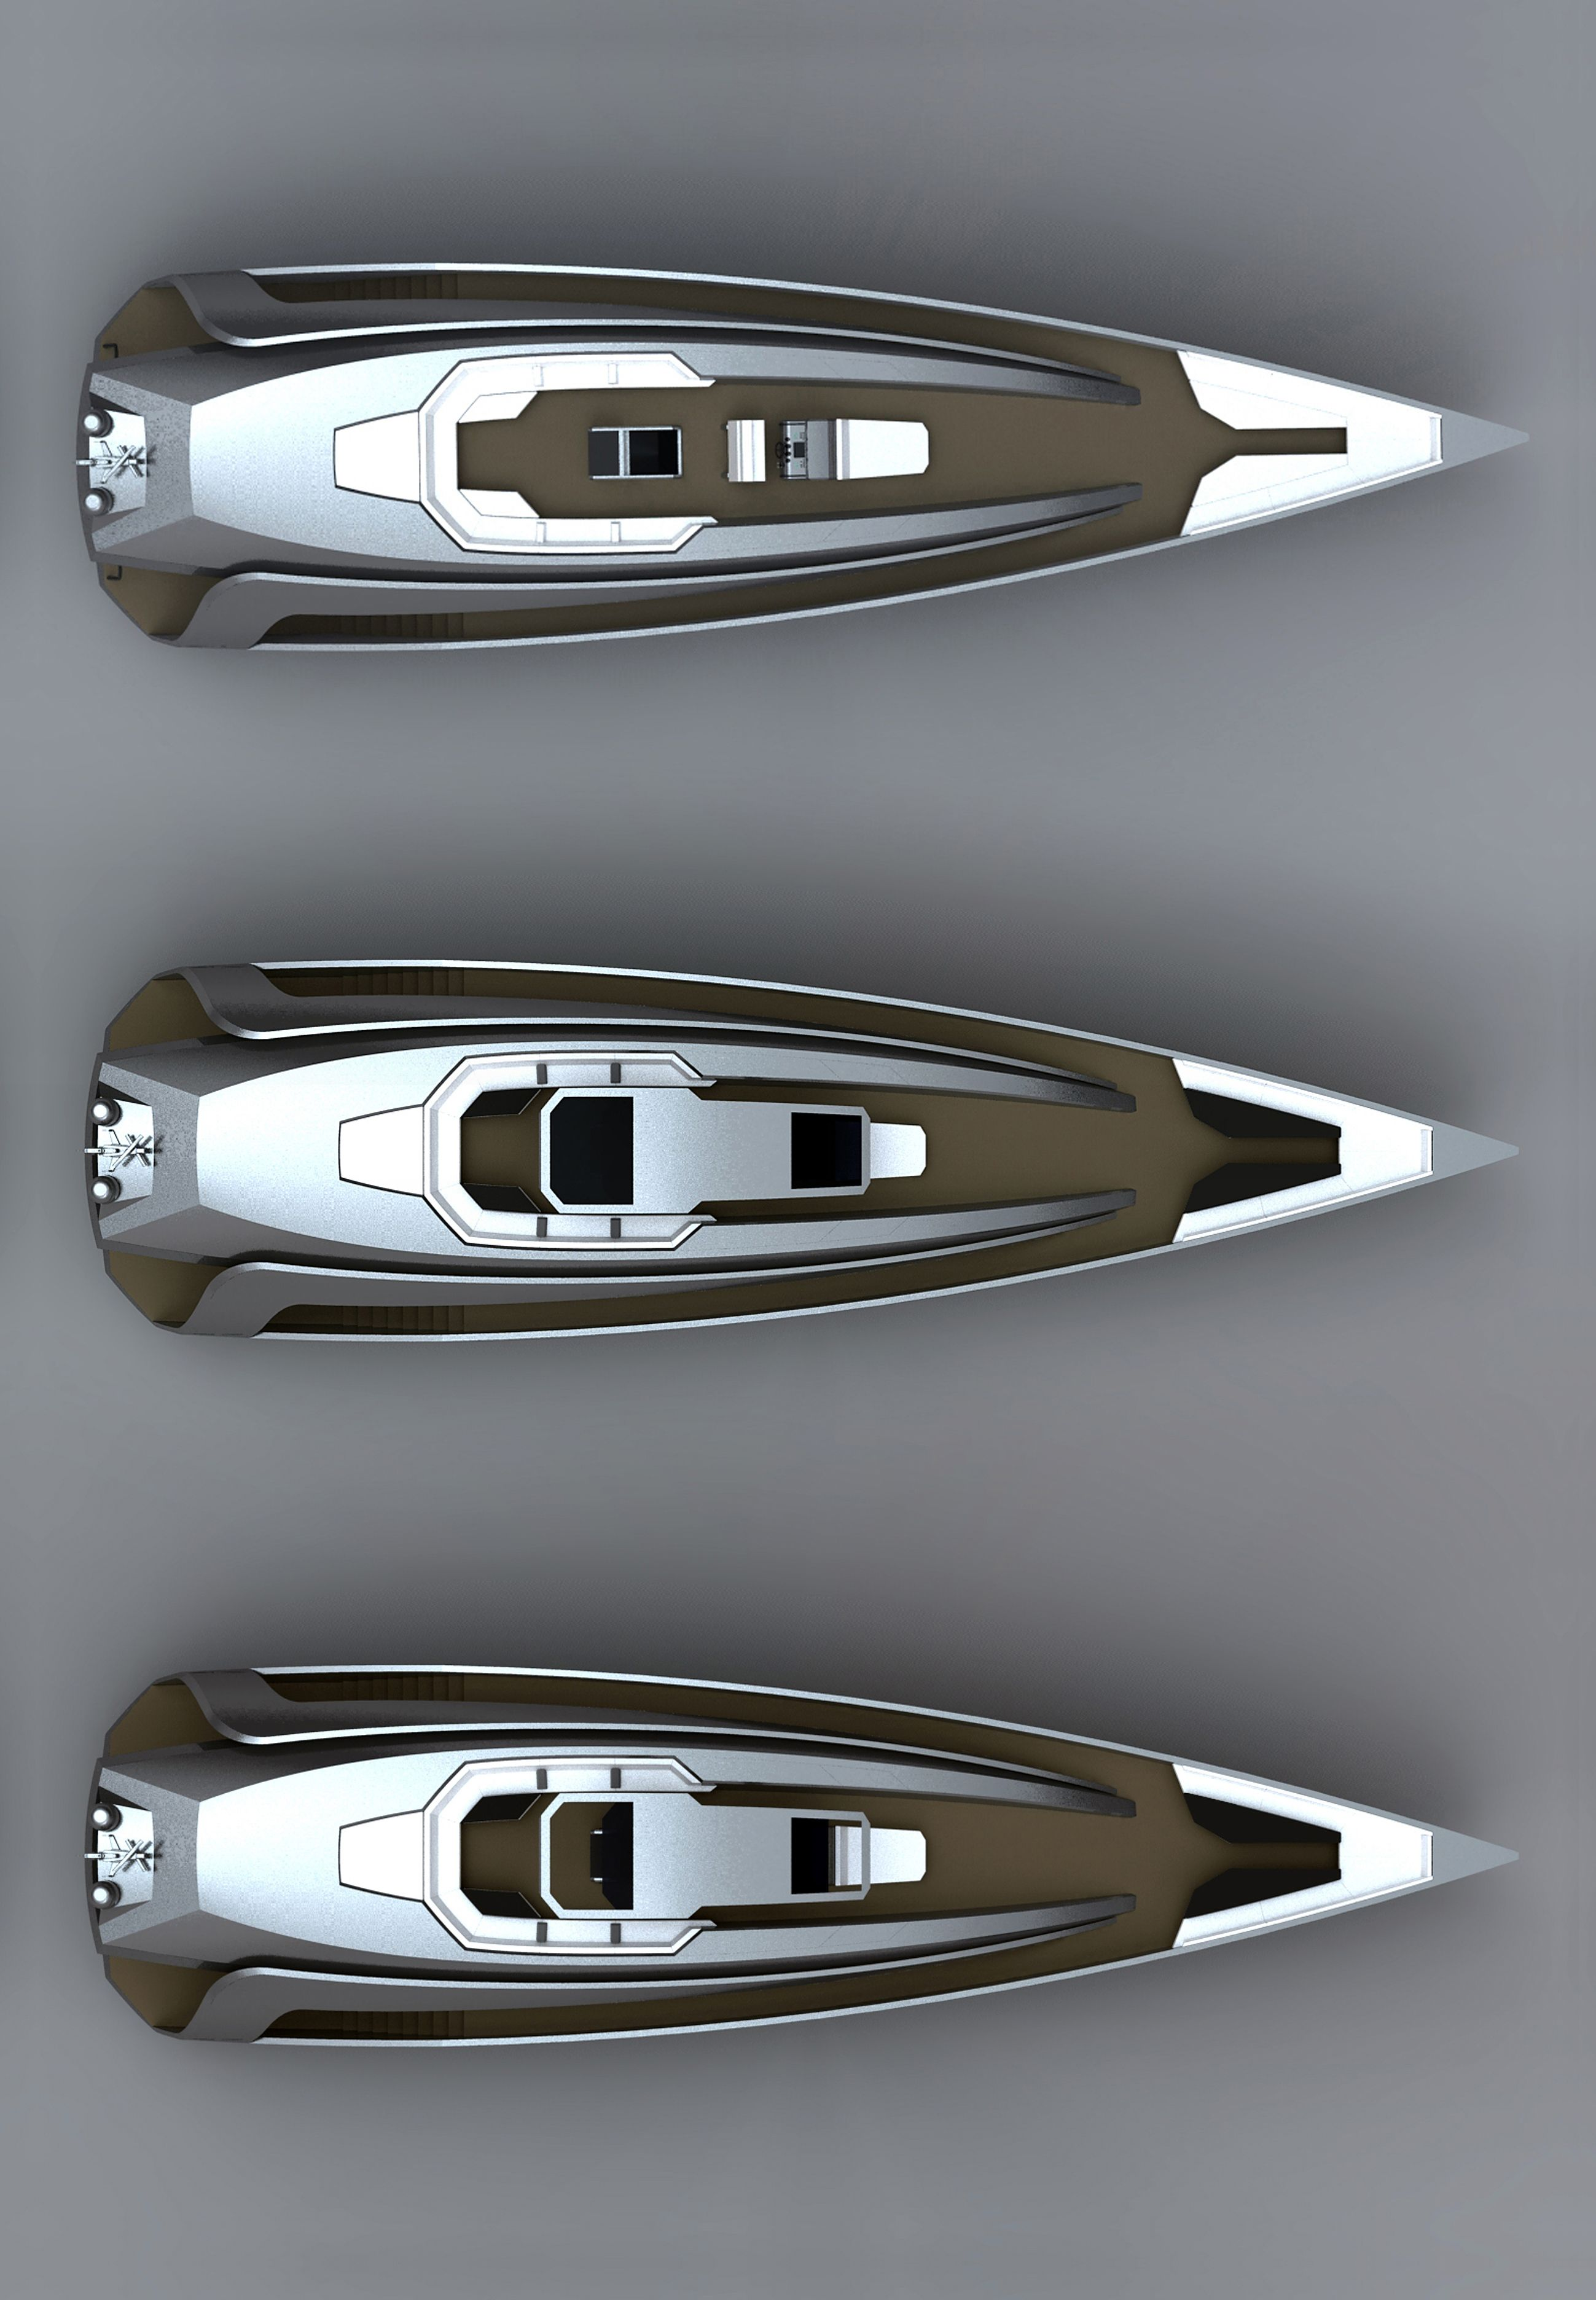 33 meters Yacht project by Ubica-id #Yachtdesign  #Yachtconcept #Barcelona